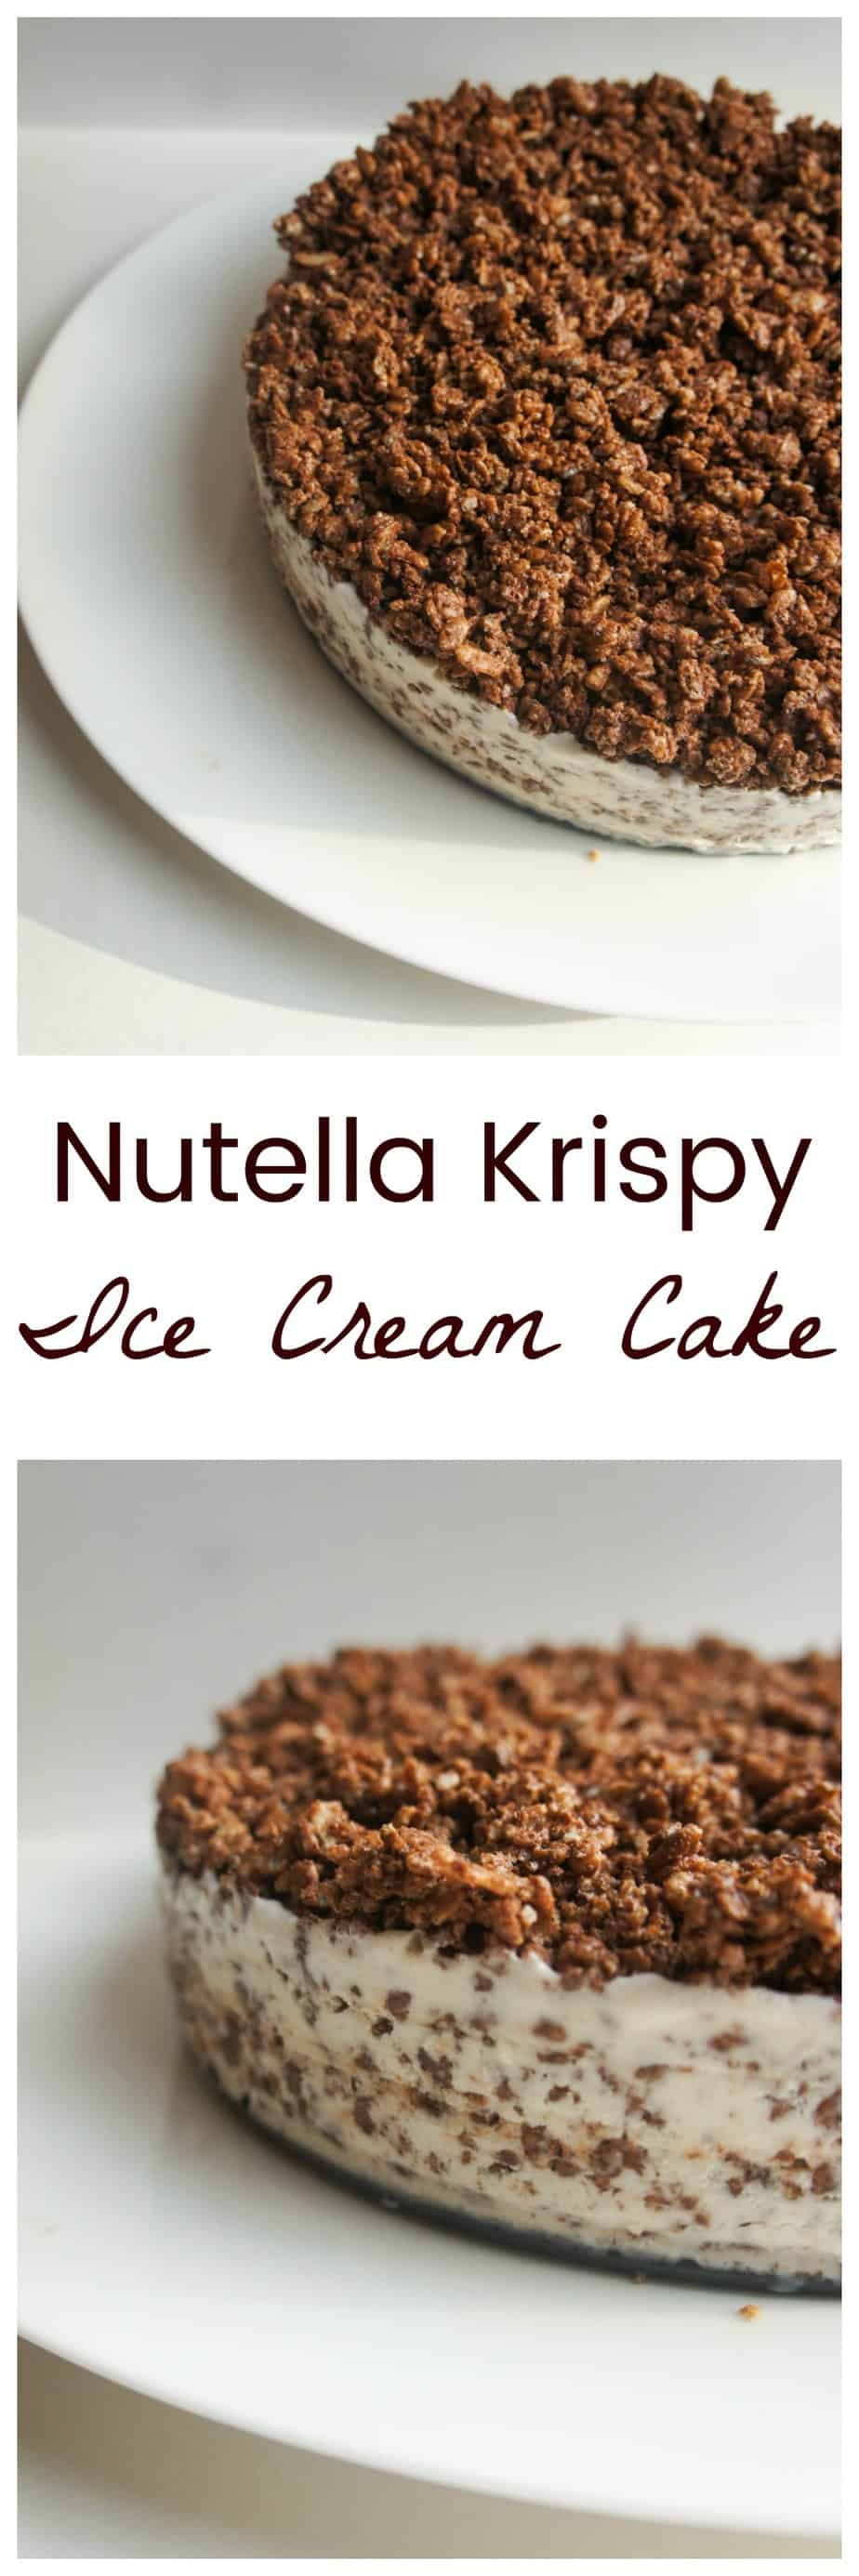 Nutella Rice Krispy Ice Cream Cake is the perfect end of summer treat! Refreshing, light and fun, this is a sure way to win everyone's hearts (and belly's!)